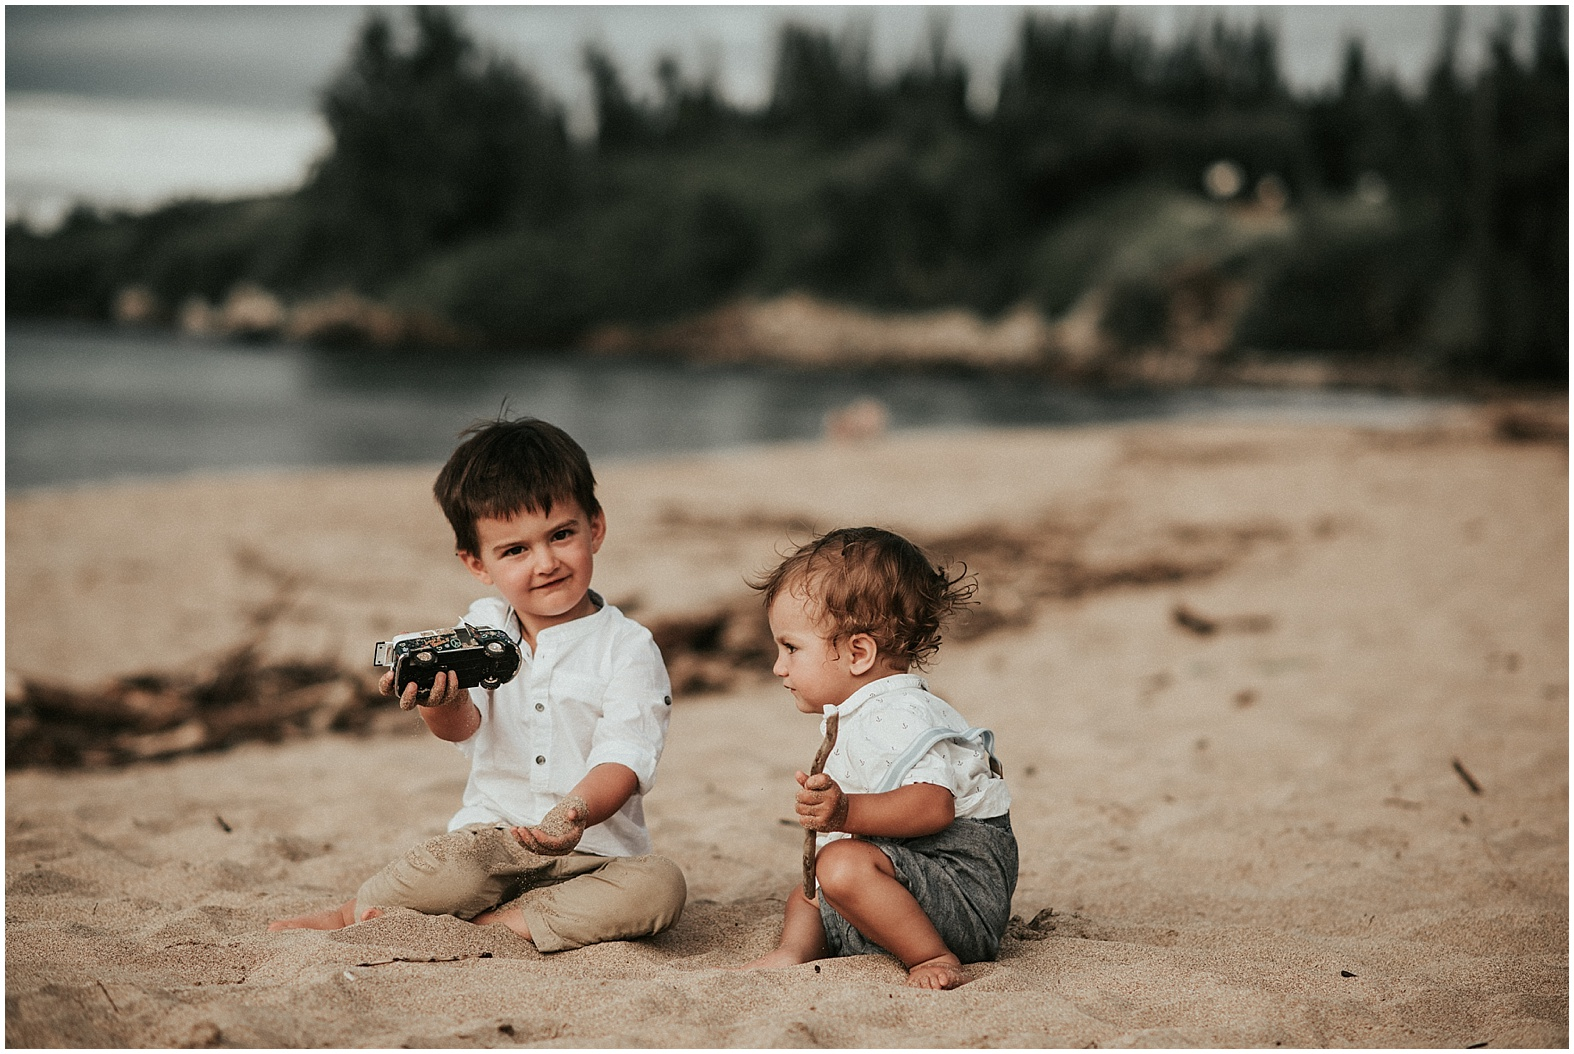 Maui family photography3.jpg